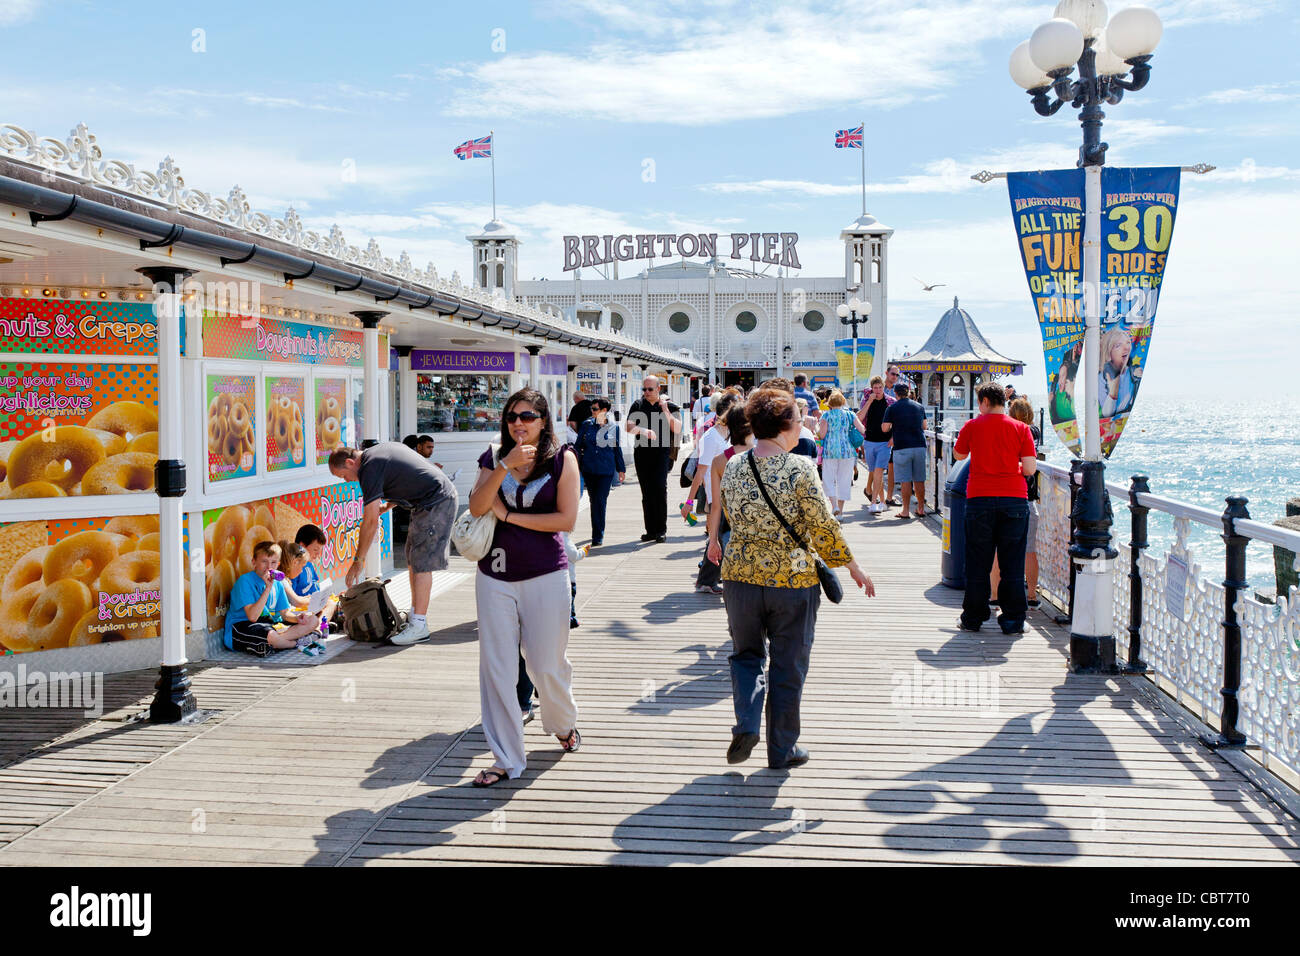 People on holiday and vacation sitting, relaxing, walking and enjoying themselves on the Brighton Pier boardwalk. - Stock Image